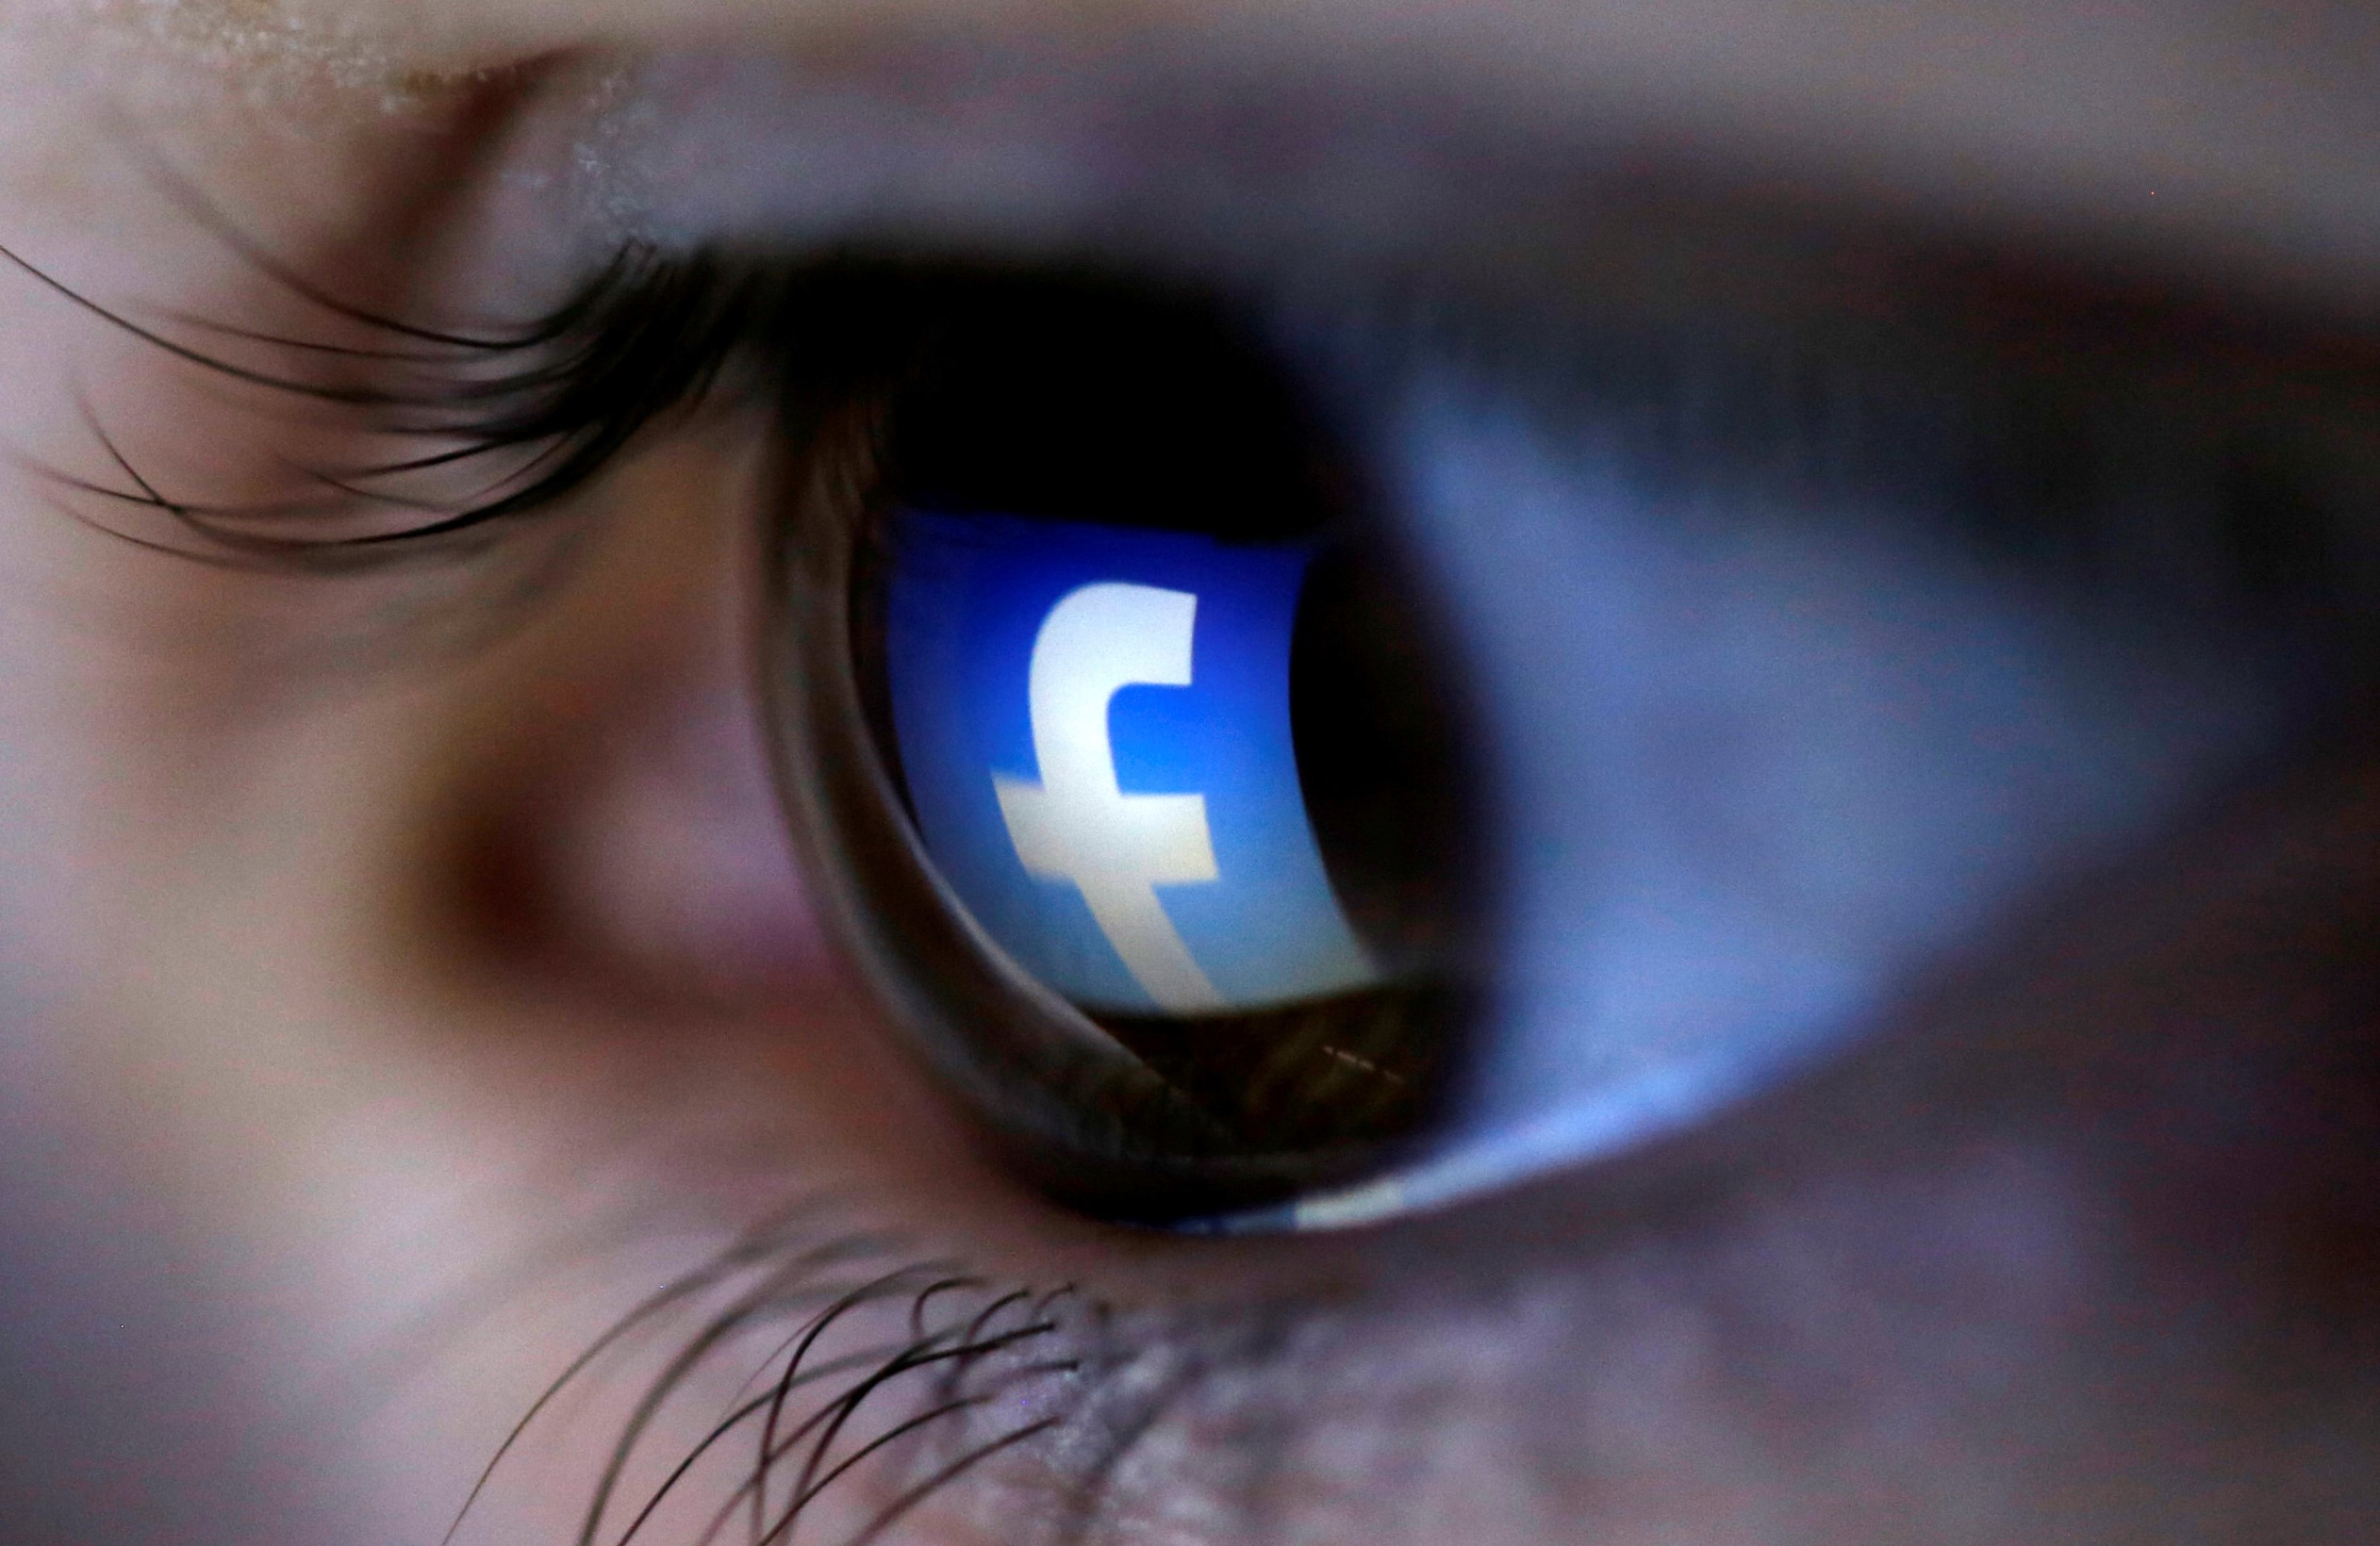 Facebook has made changes over the years to graph search and offered users privacy settings limiting what information is unearthed. — Reuters pic